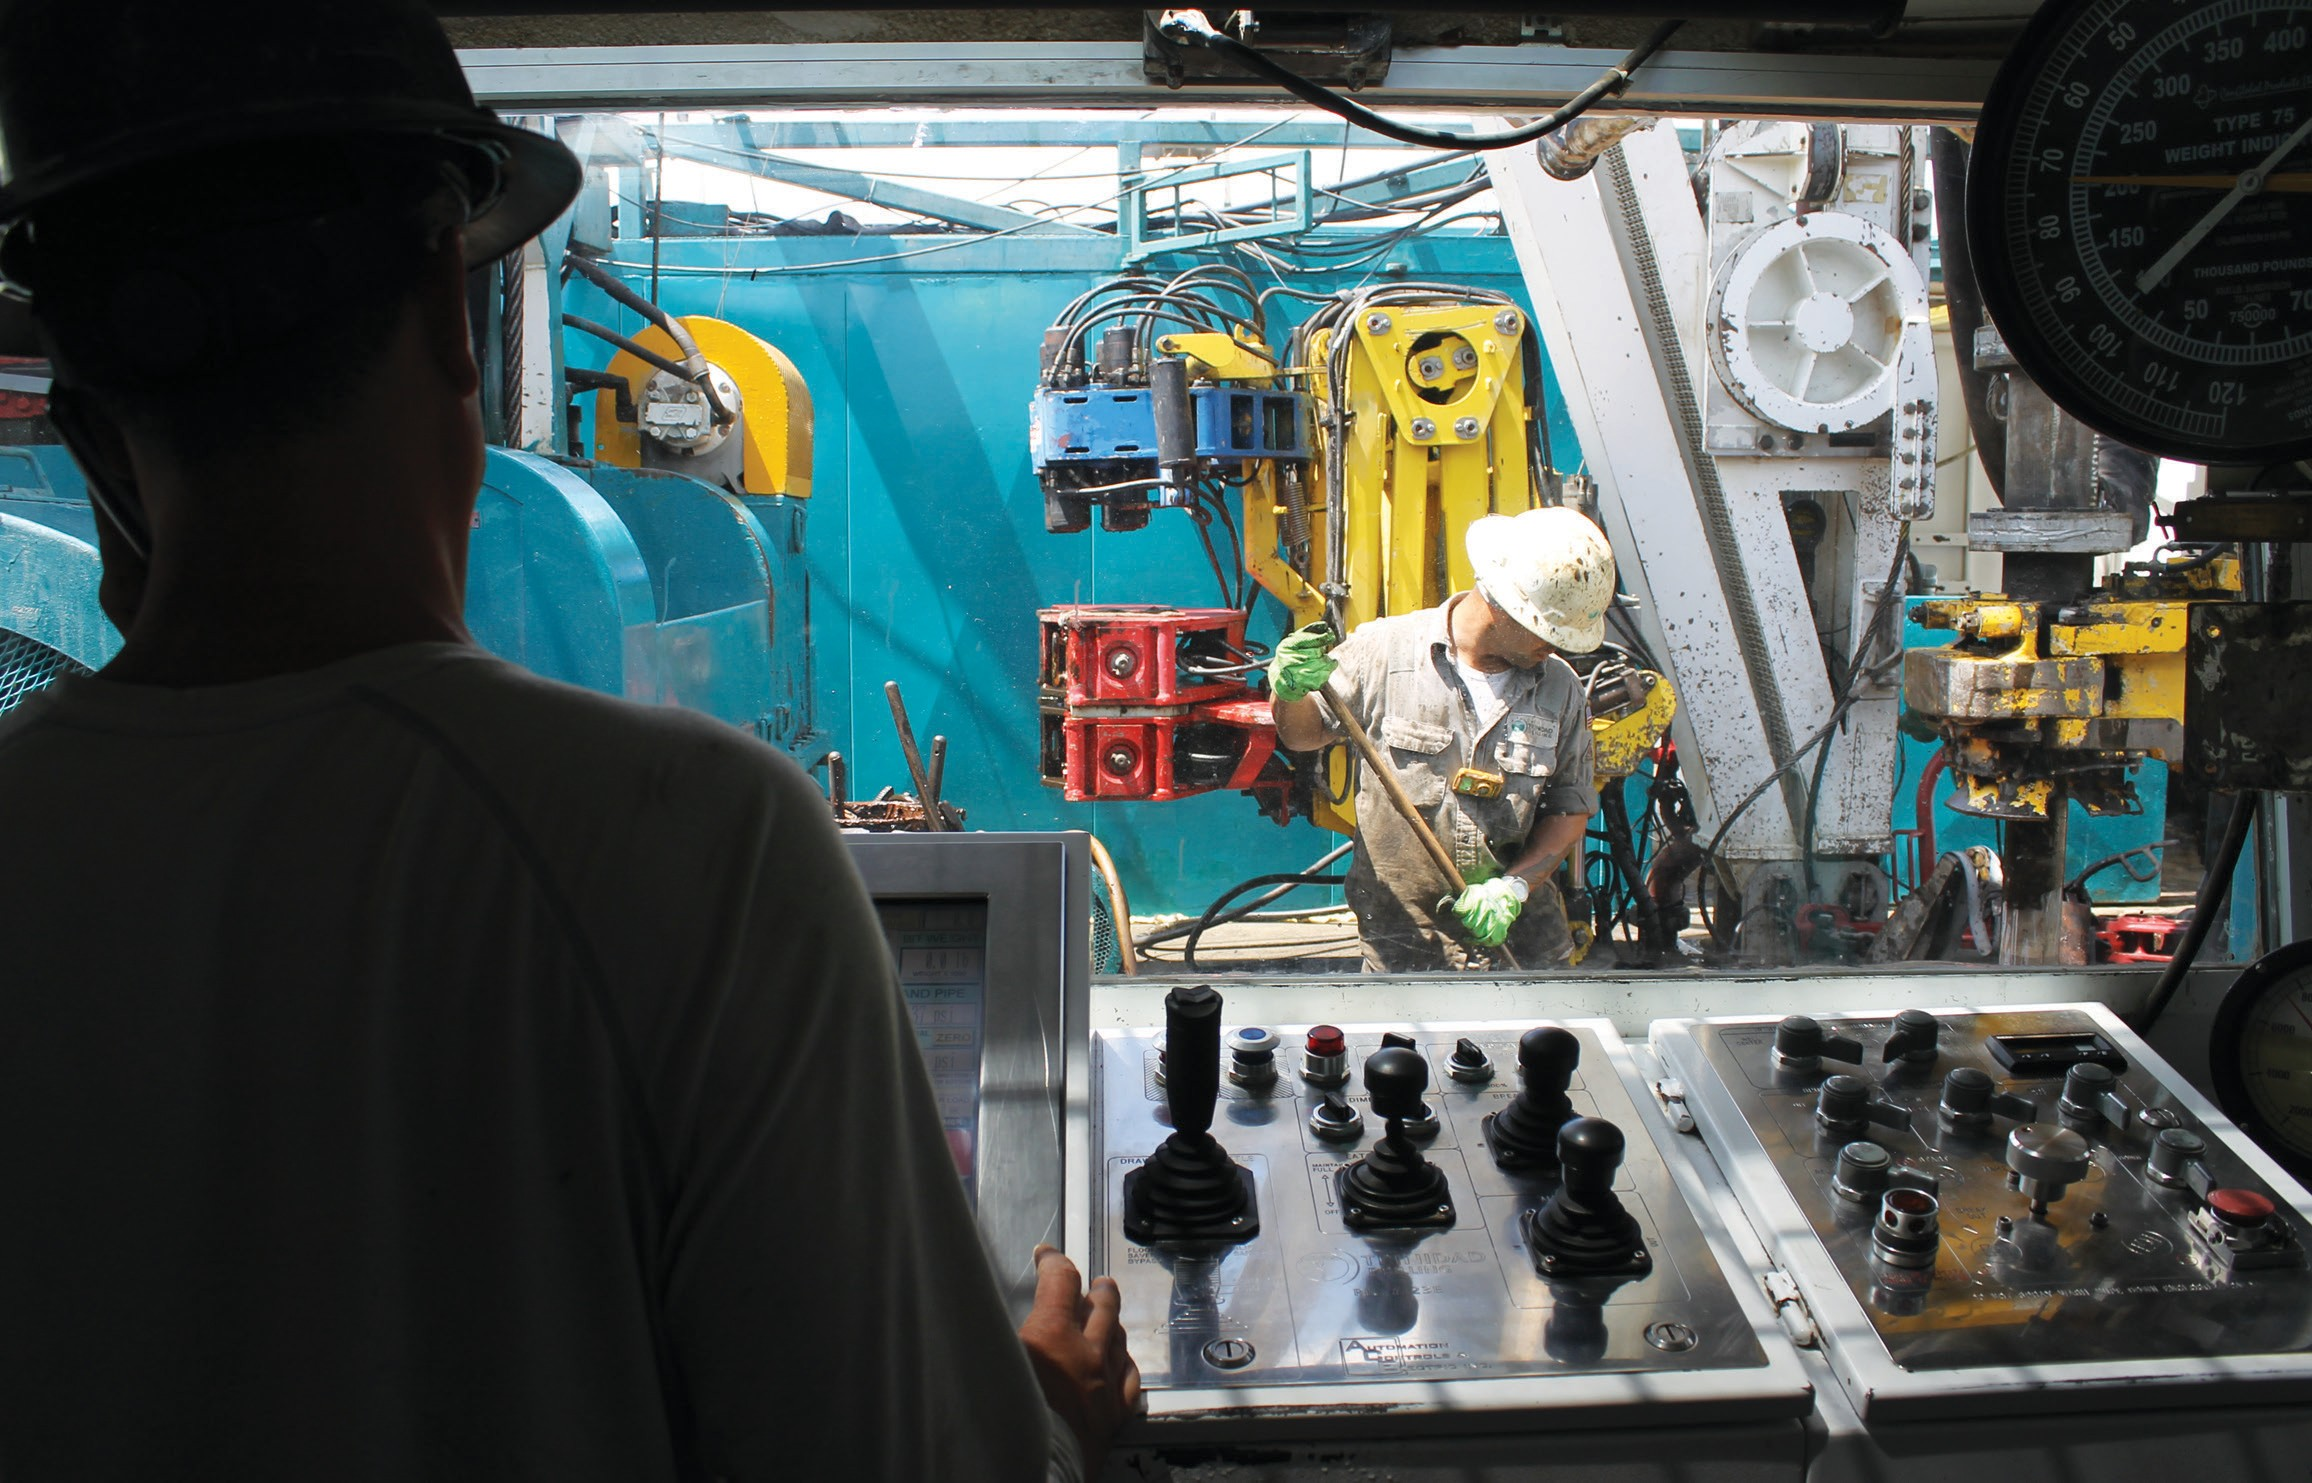 View from the driller's control room 'doghouse' on Trinidad Drilling Rig 123E during operations south of Pleasanton off CR 429. This is at Abraxas Petroleum site where a 5,700 foot horizontal Austin Chalk well is being drilled.